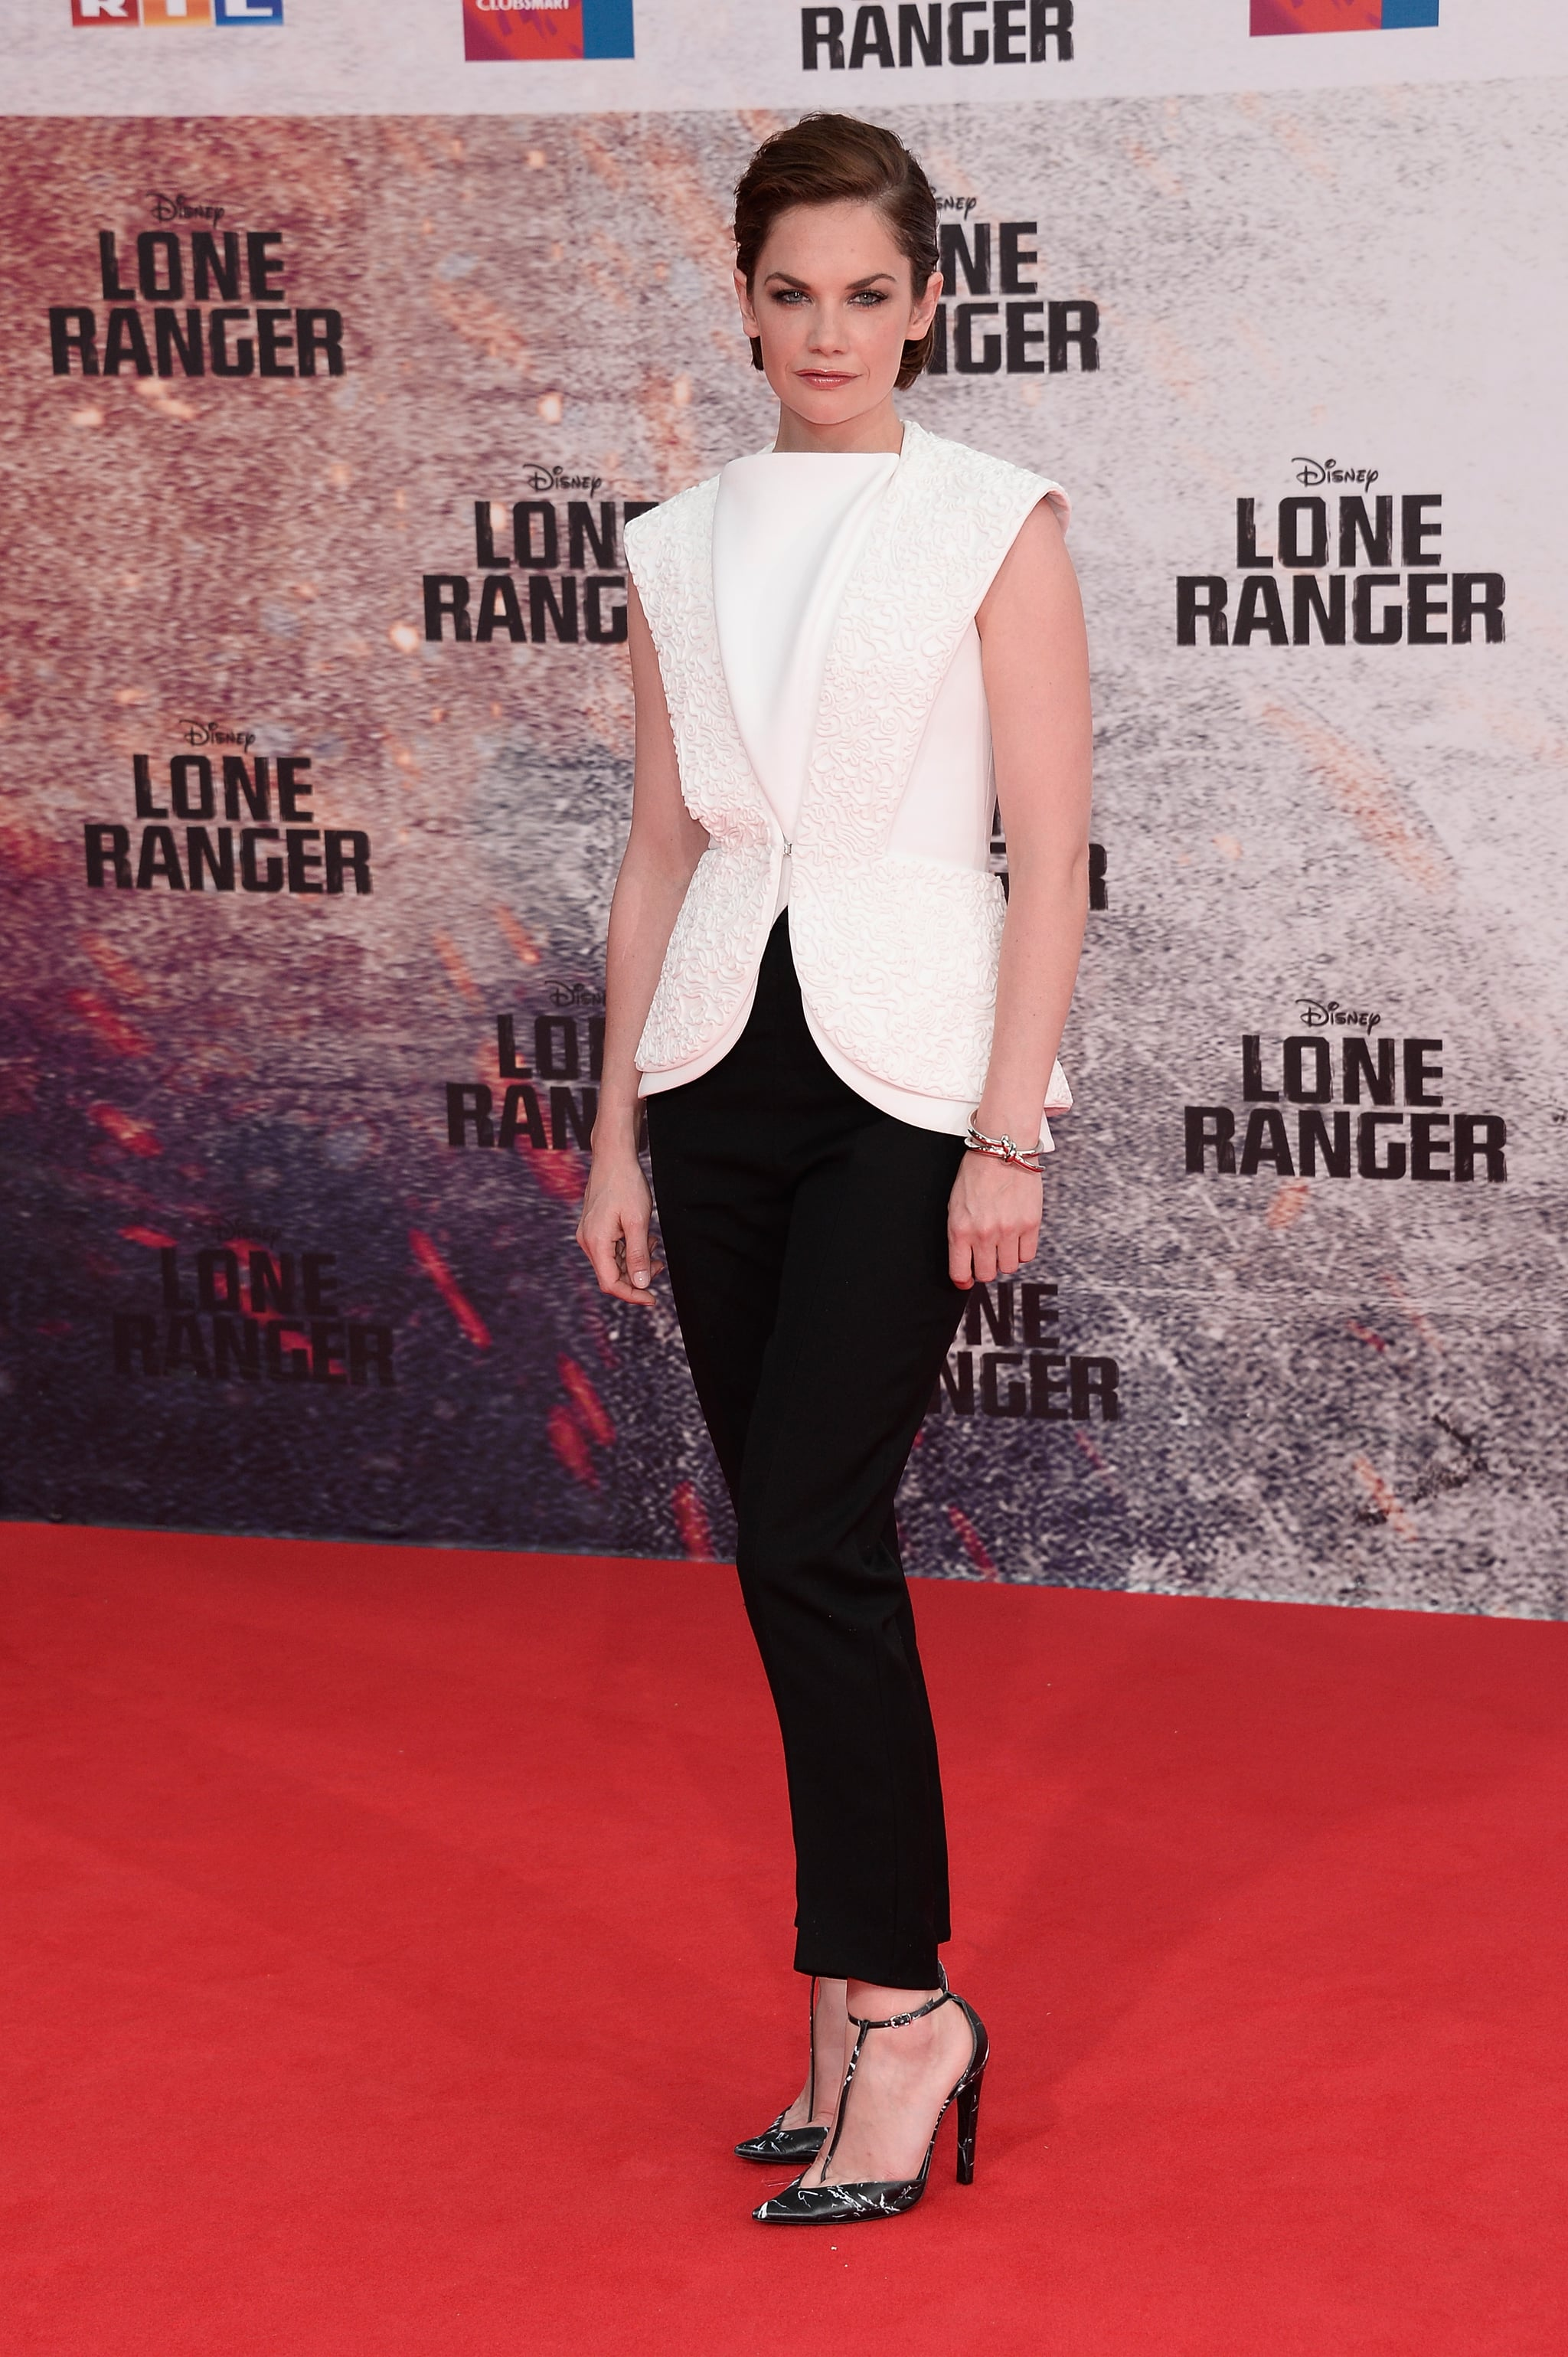 Ruth Wilson at the Berlin Premiere of Lone Ranger